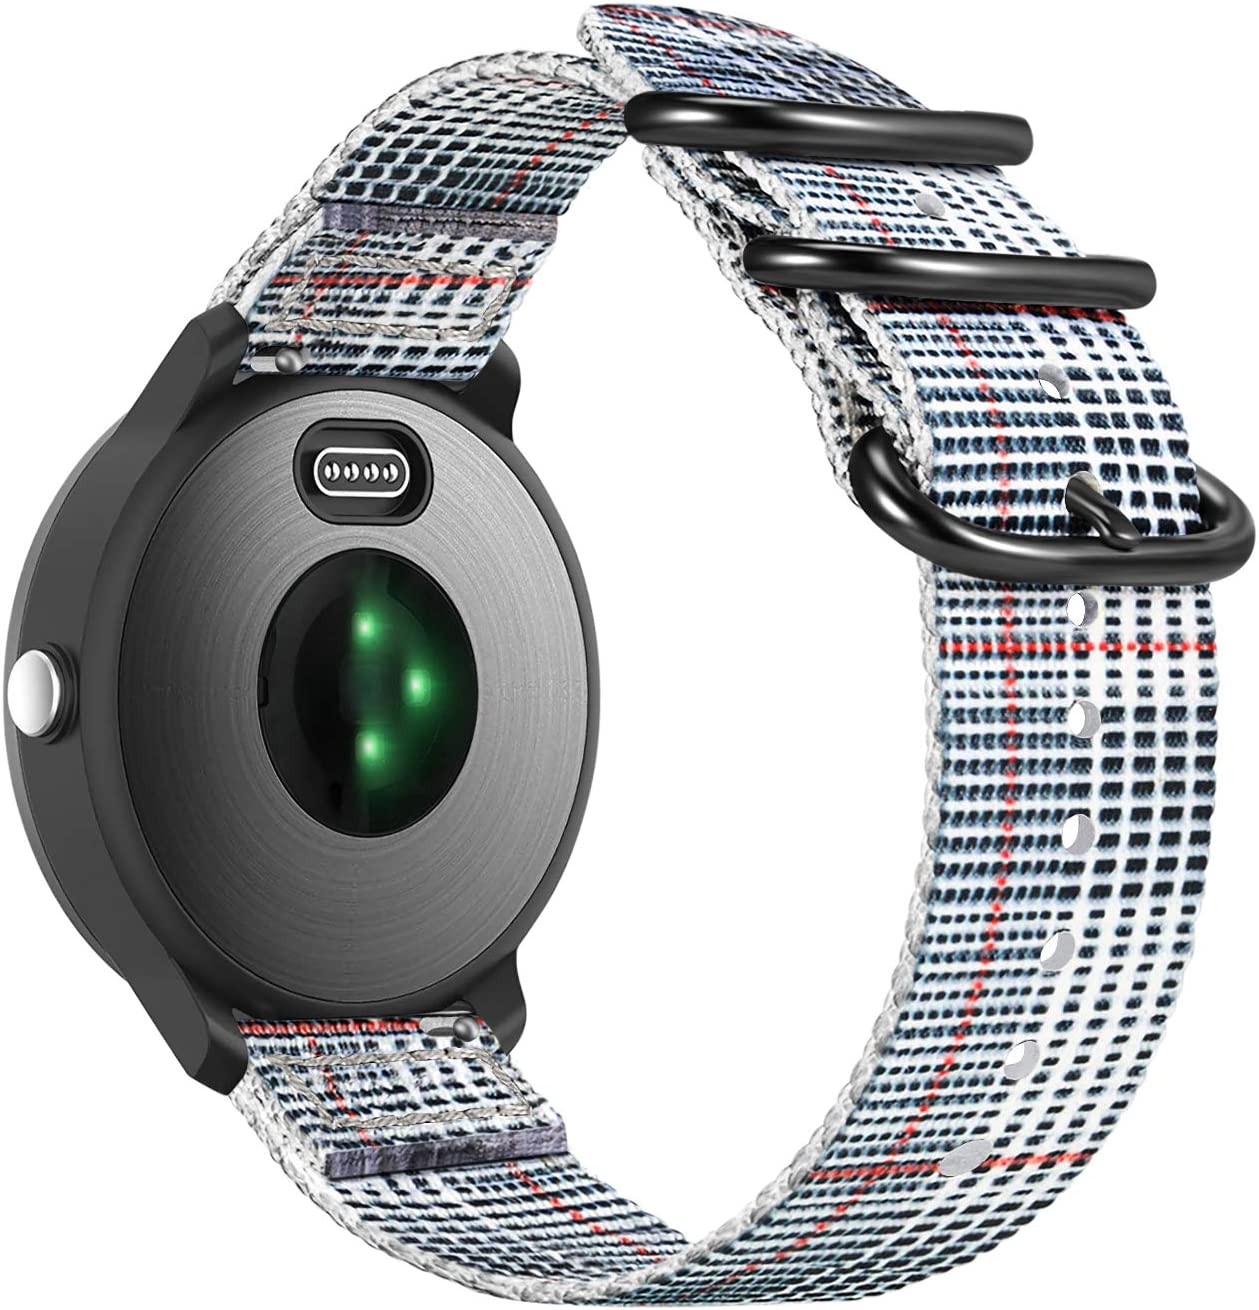 Color-B 20mm Soft Nylon Replacement Strap Band Compatible with Garmin Vivoactive 3 Fintie Band Compatible with Garmin Vivoactive 3 Vivoactive 3 Music//Forerunner 645 Music Smartwatch